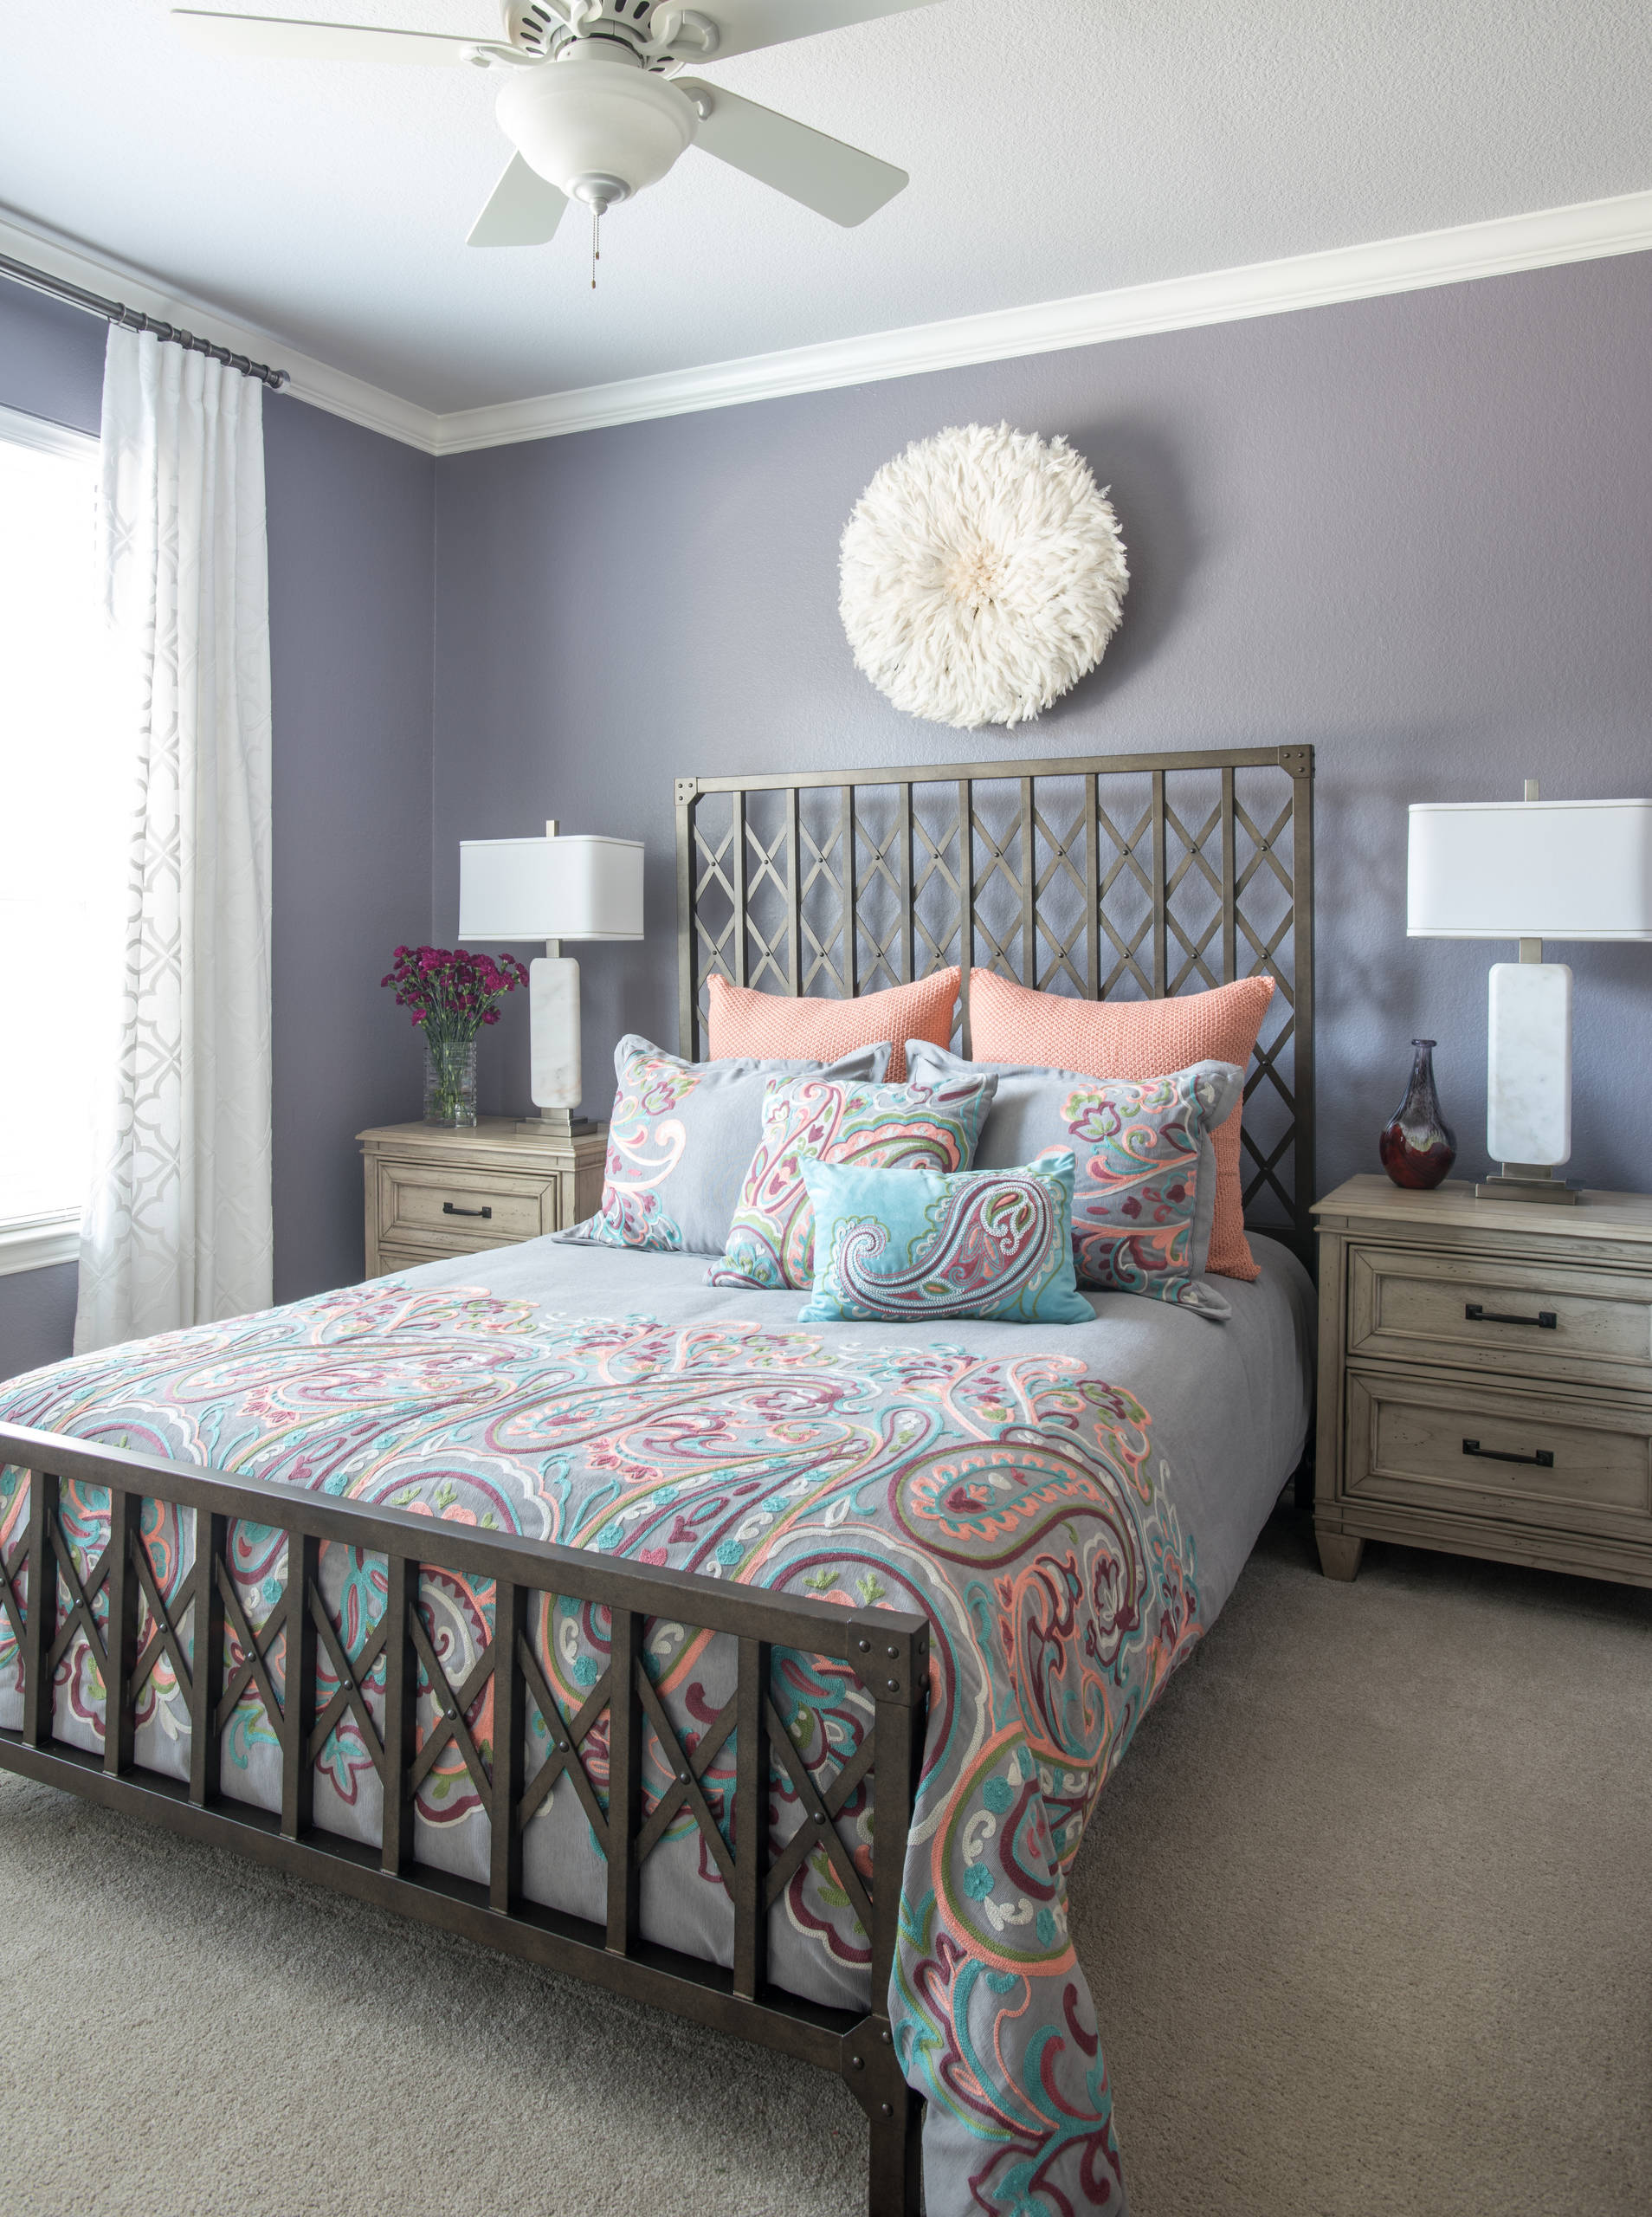 75 Beautiful Bedroom With Purple Walls Pictures Ideas February 2021 Houzz